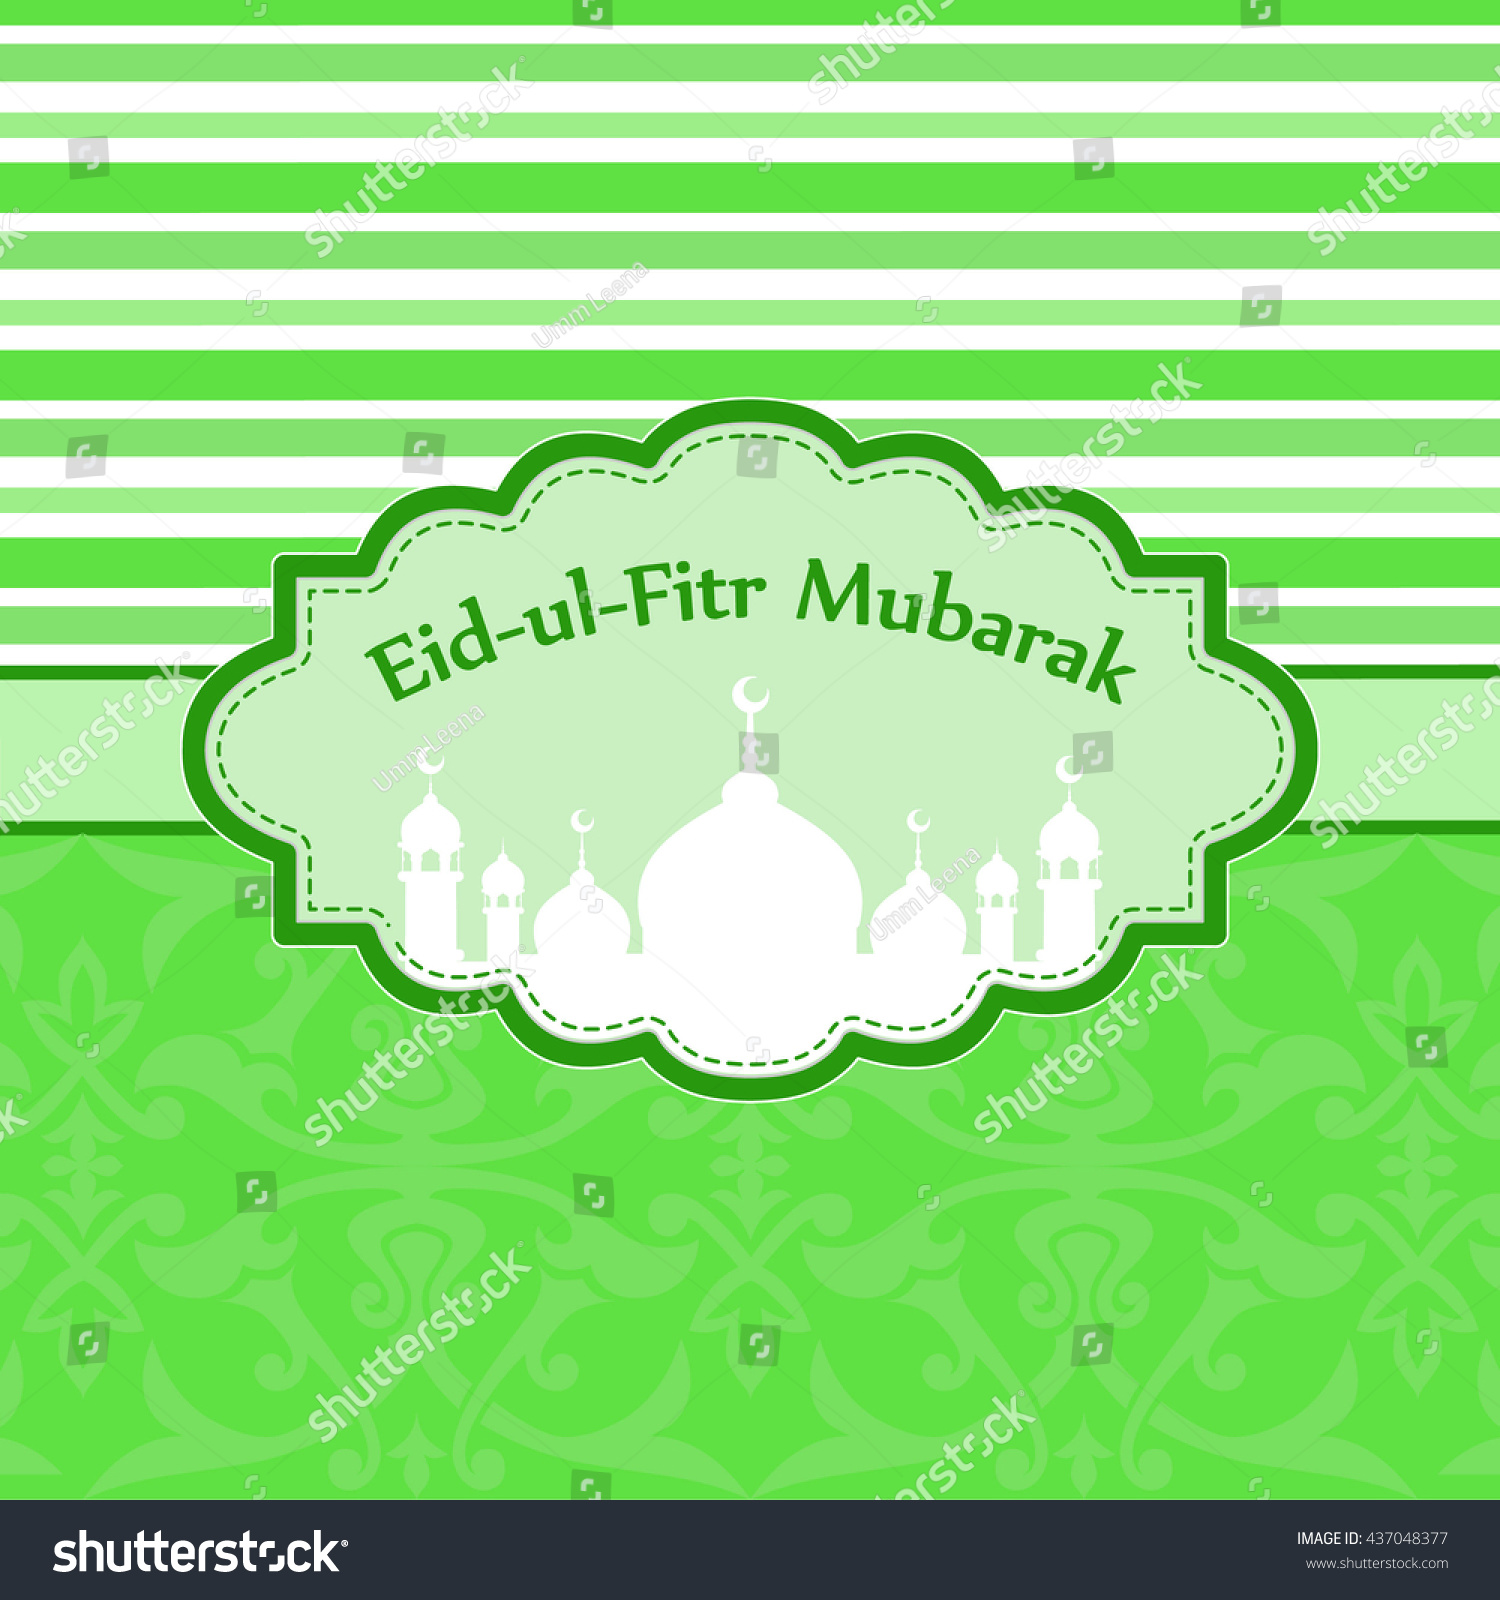 Beautiful Celebration Eid Al-Fitr Decorations - stock-vector-sticker-or-label-design-for-eid-al-fitr-celebration-design-decorated-frame-with-mosque-for-month-437048377  Best Photo Reference_921242 .jpg